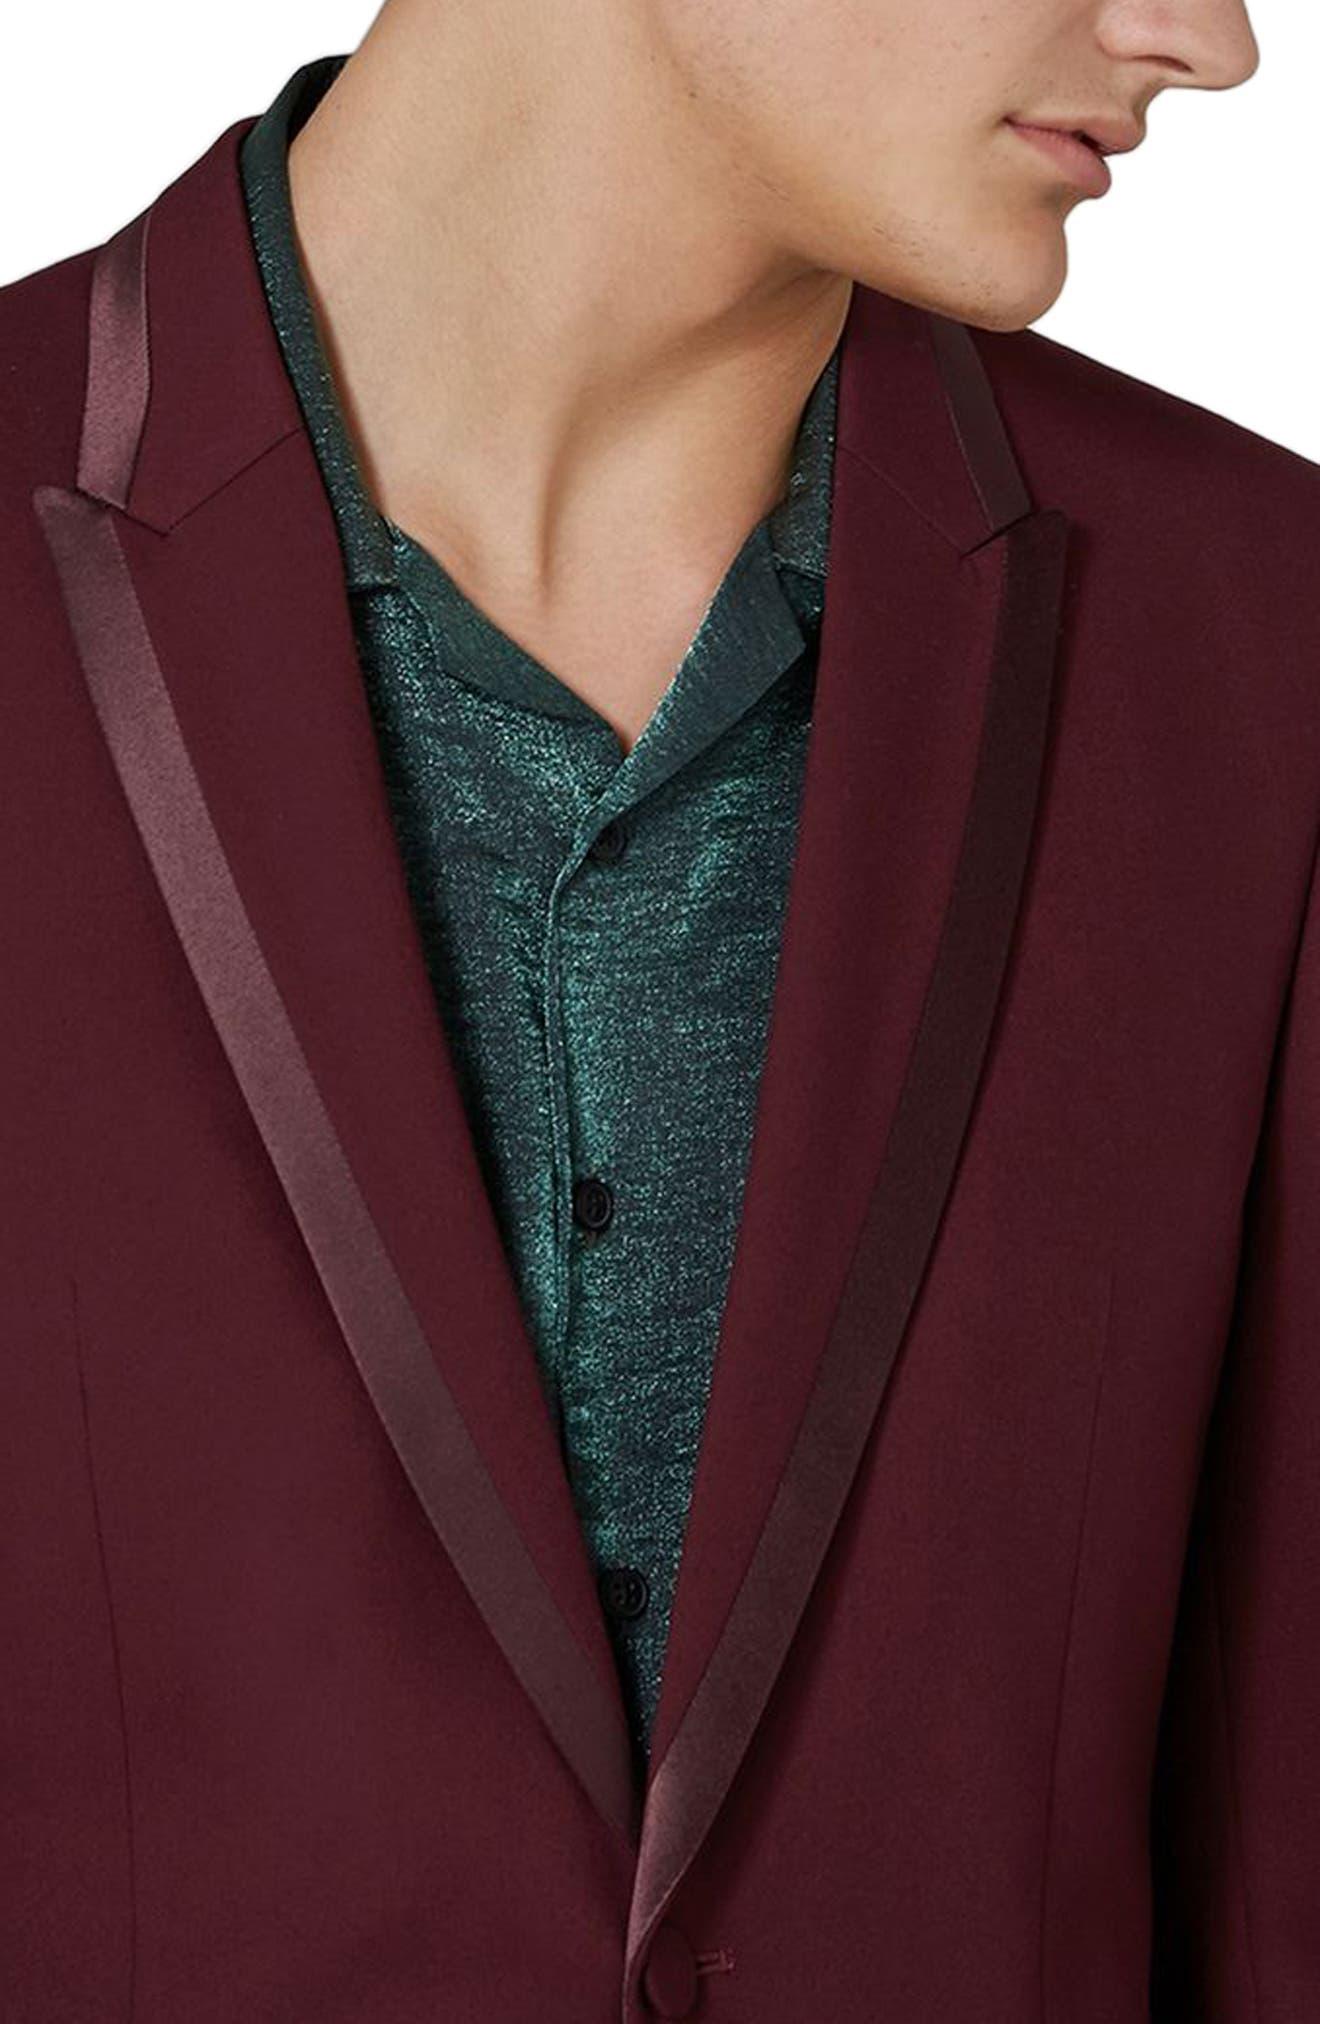 Skinny Fit Burgundy Tuxedo Jacket,                             Alternate thumbnail 3, color,